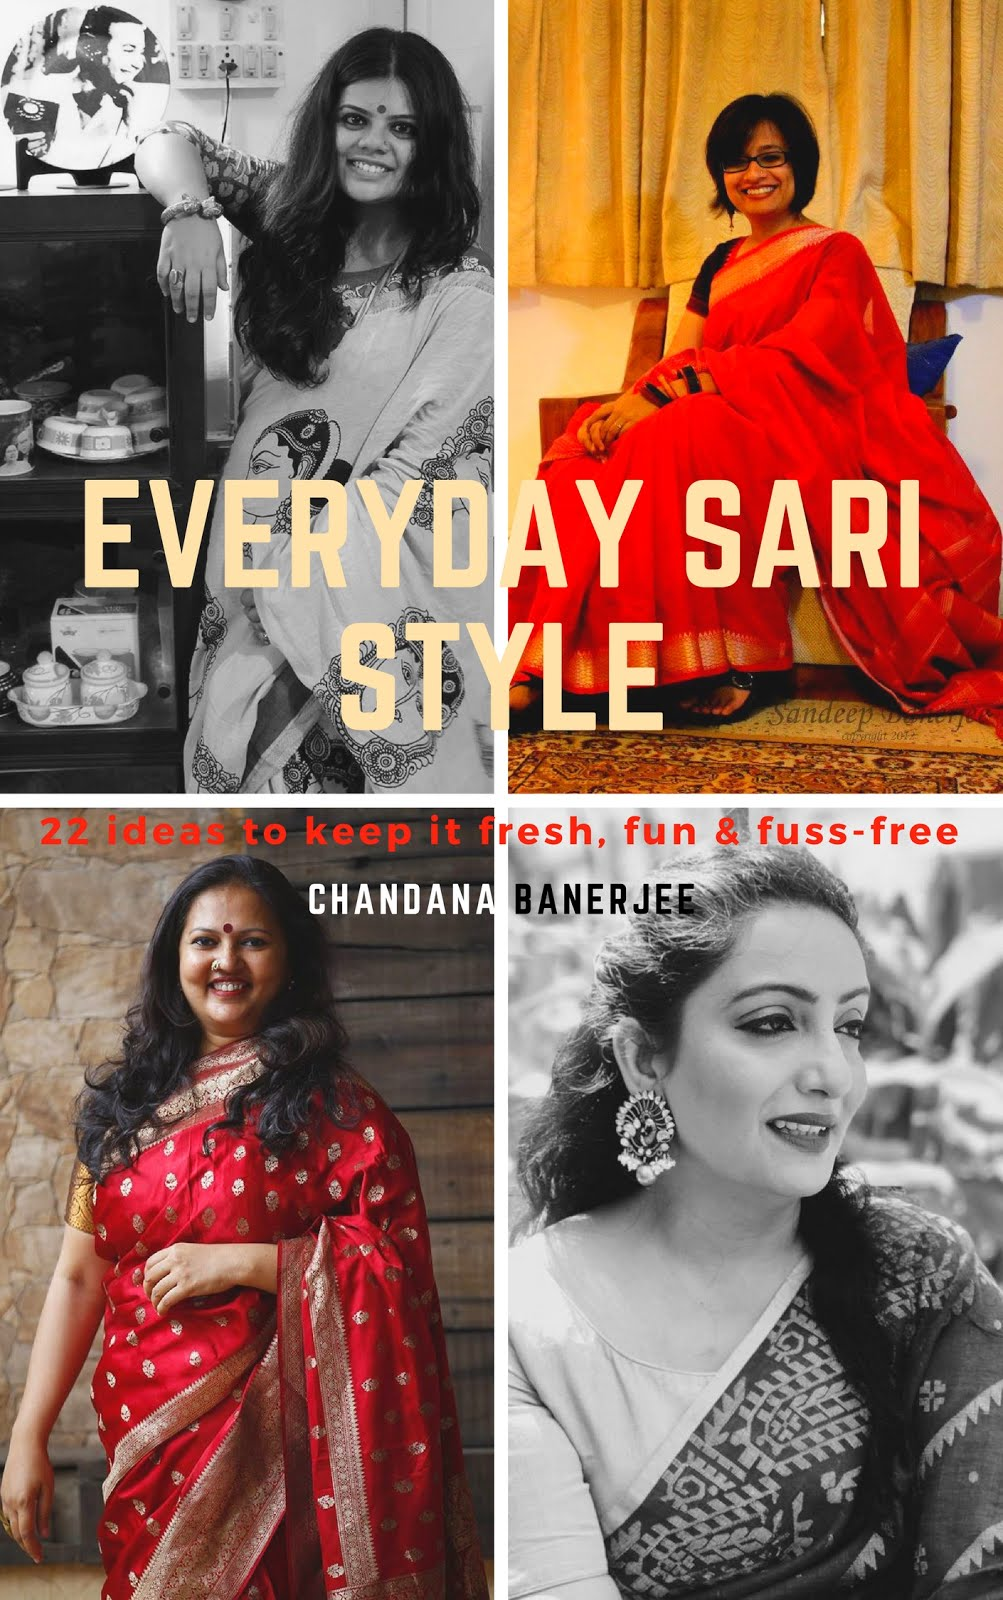 Sign-up to receive our Free ebook 'Everyday Sari Style' & blog posts!